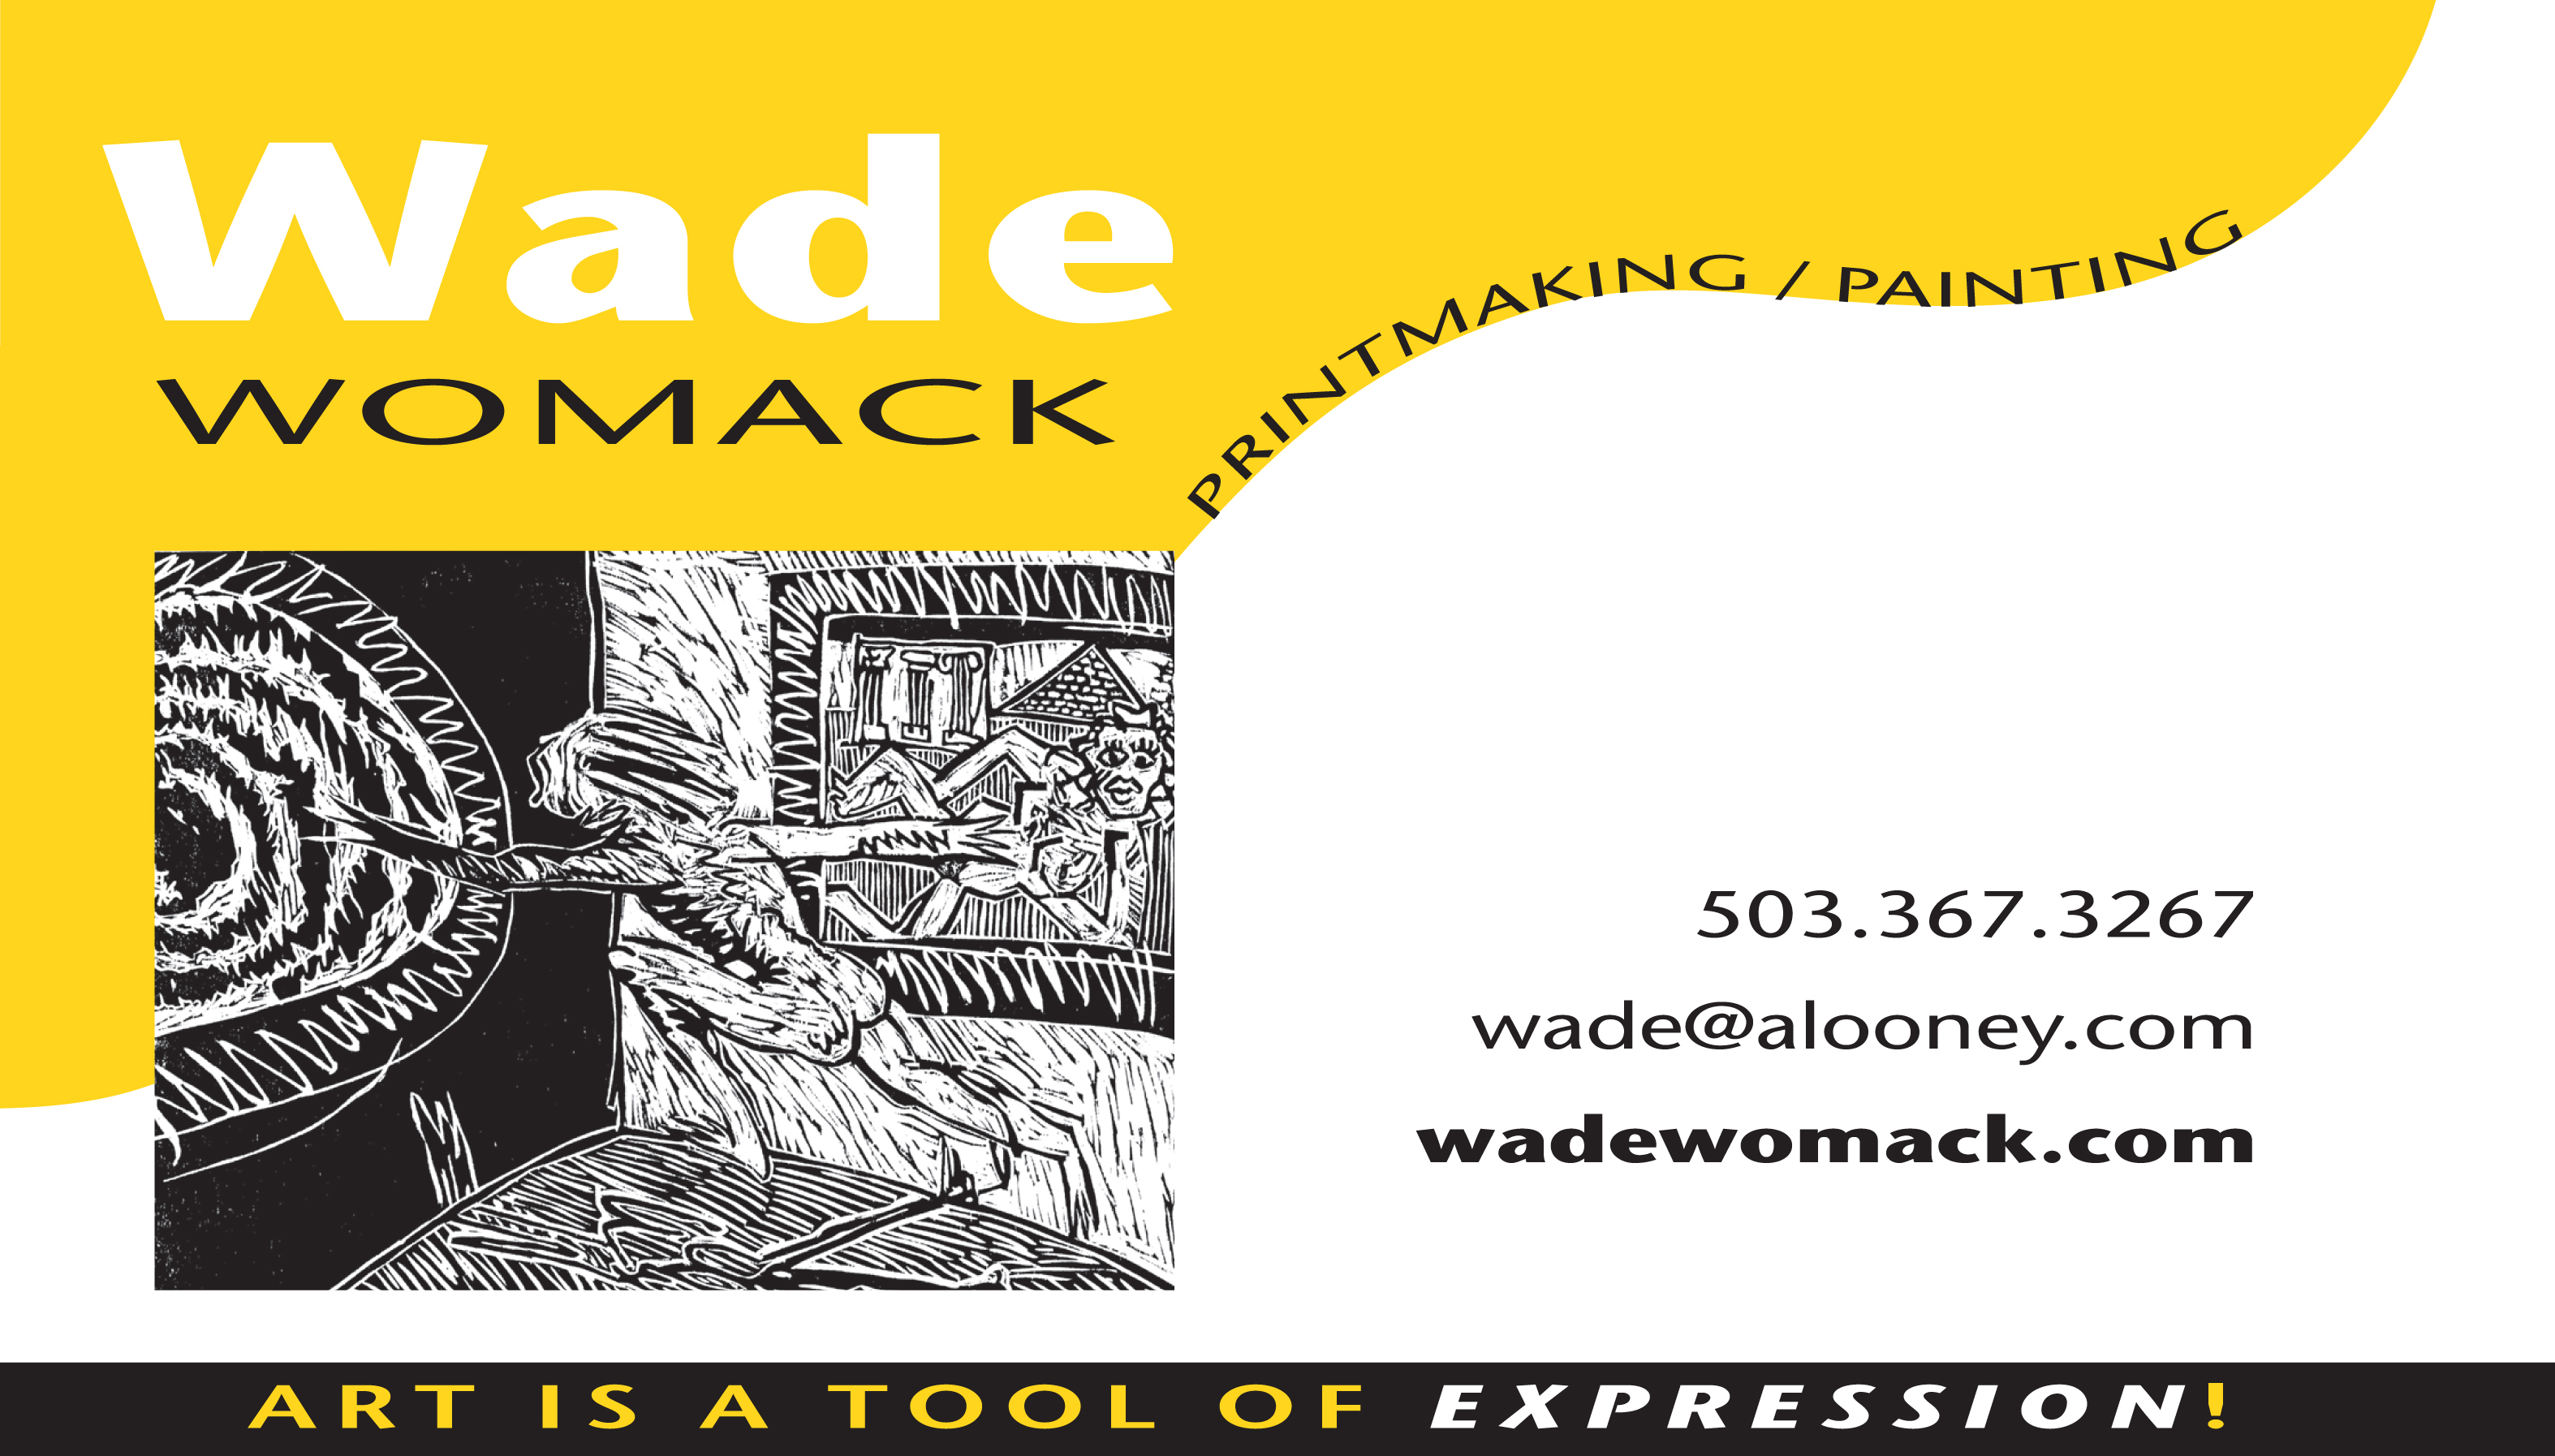 Wade Womack Printmaking and Painting  Art is a Tool of Expression